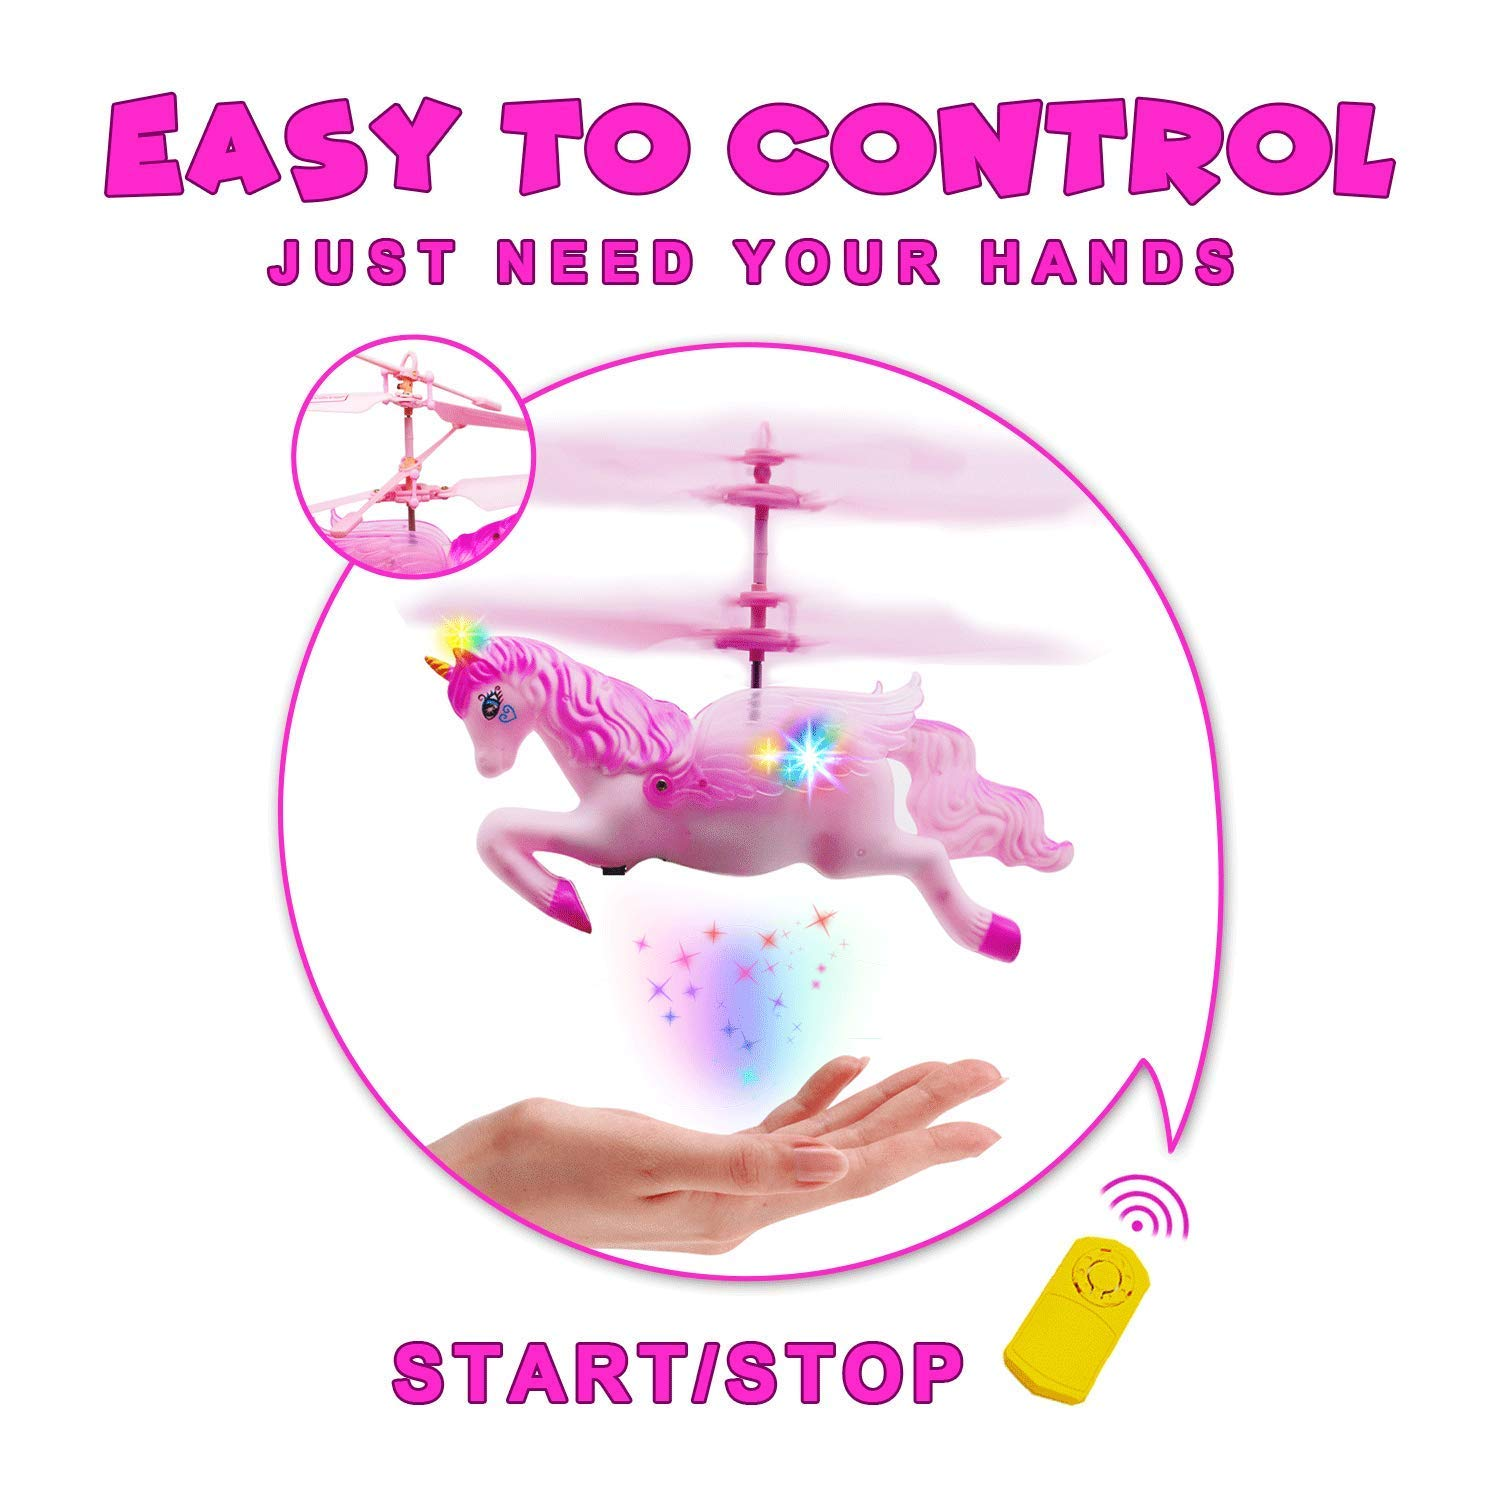 Flying Ball RC Unicorn Toys, Mini RC Flying Helicopter Unicorn Toy Gifts Hand Control Drones for Kids Boys Girls Flying Fairy Unicorn Doll Hovering Aircraft Outdoor Flying Toys Games Birthday Gift by Synmila (Image #3)